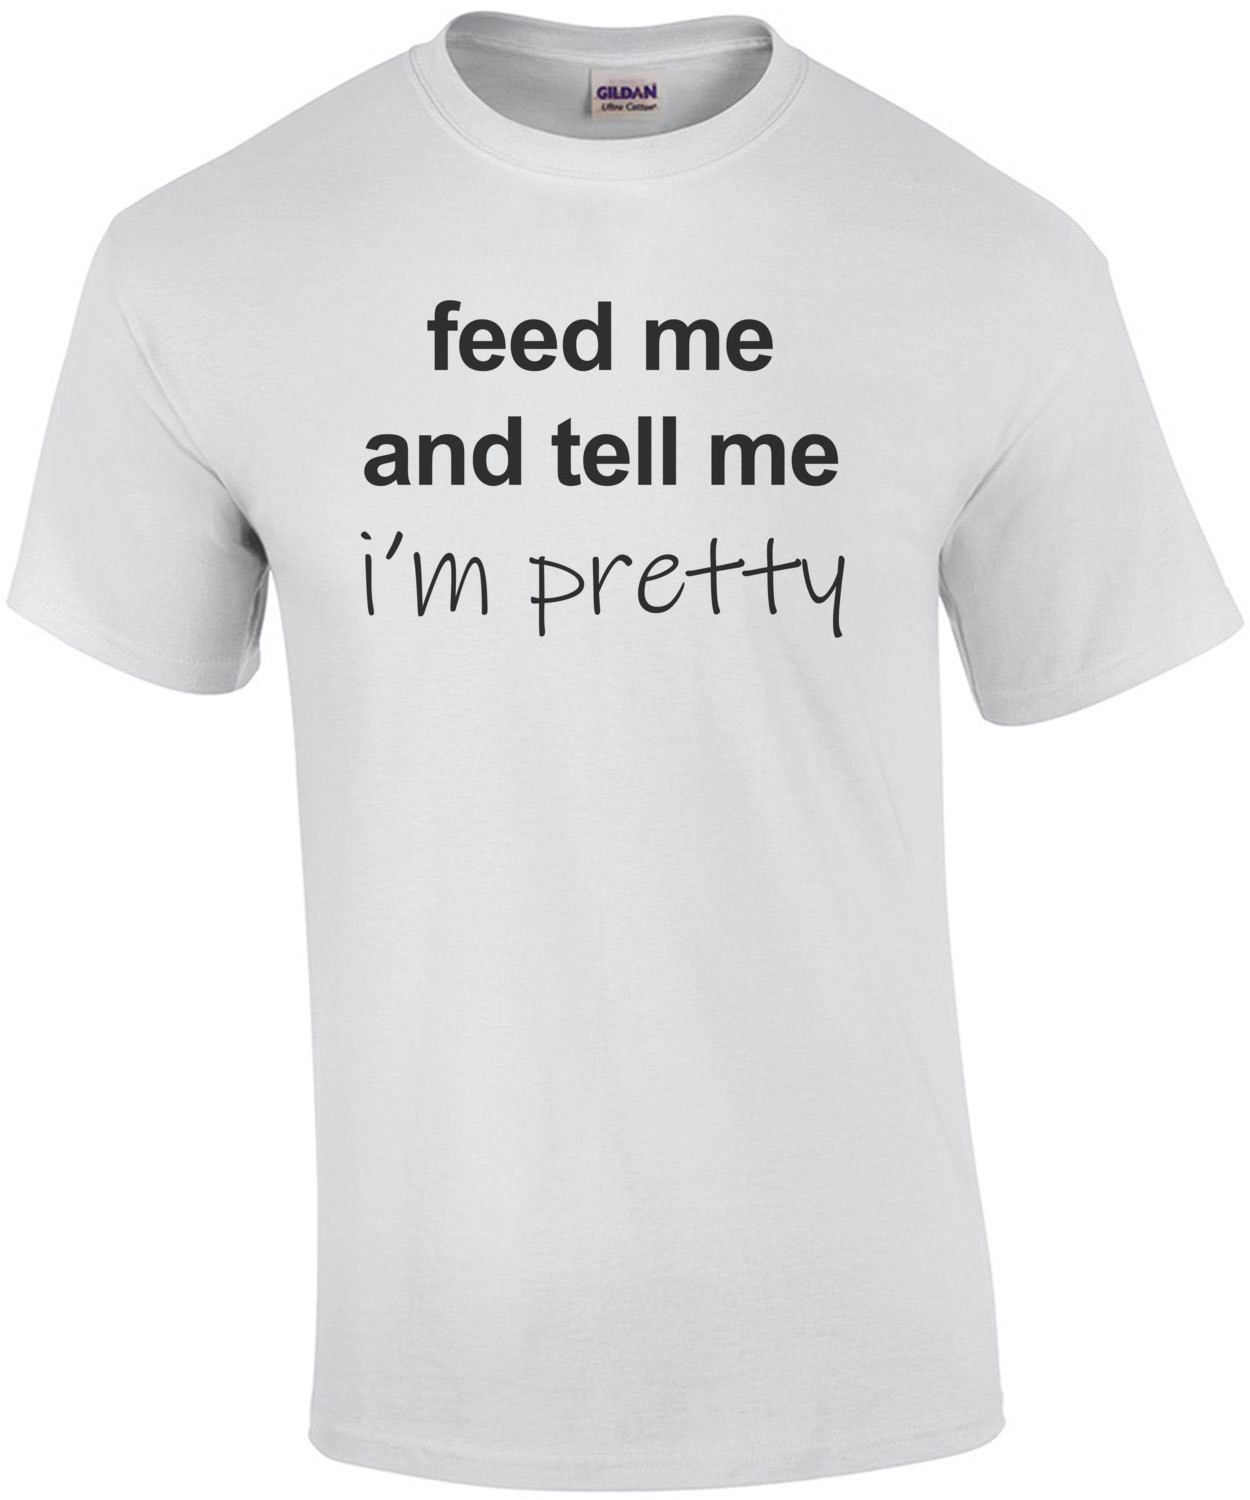 Feed me and tell me i'm pretty - funny t-shirt